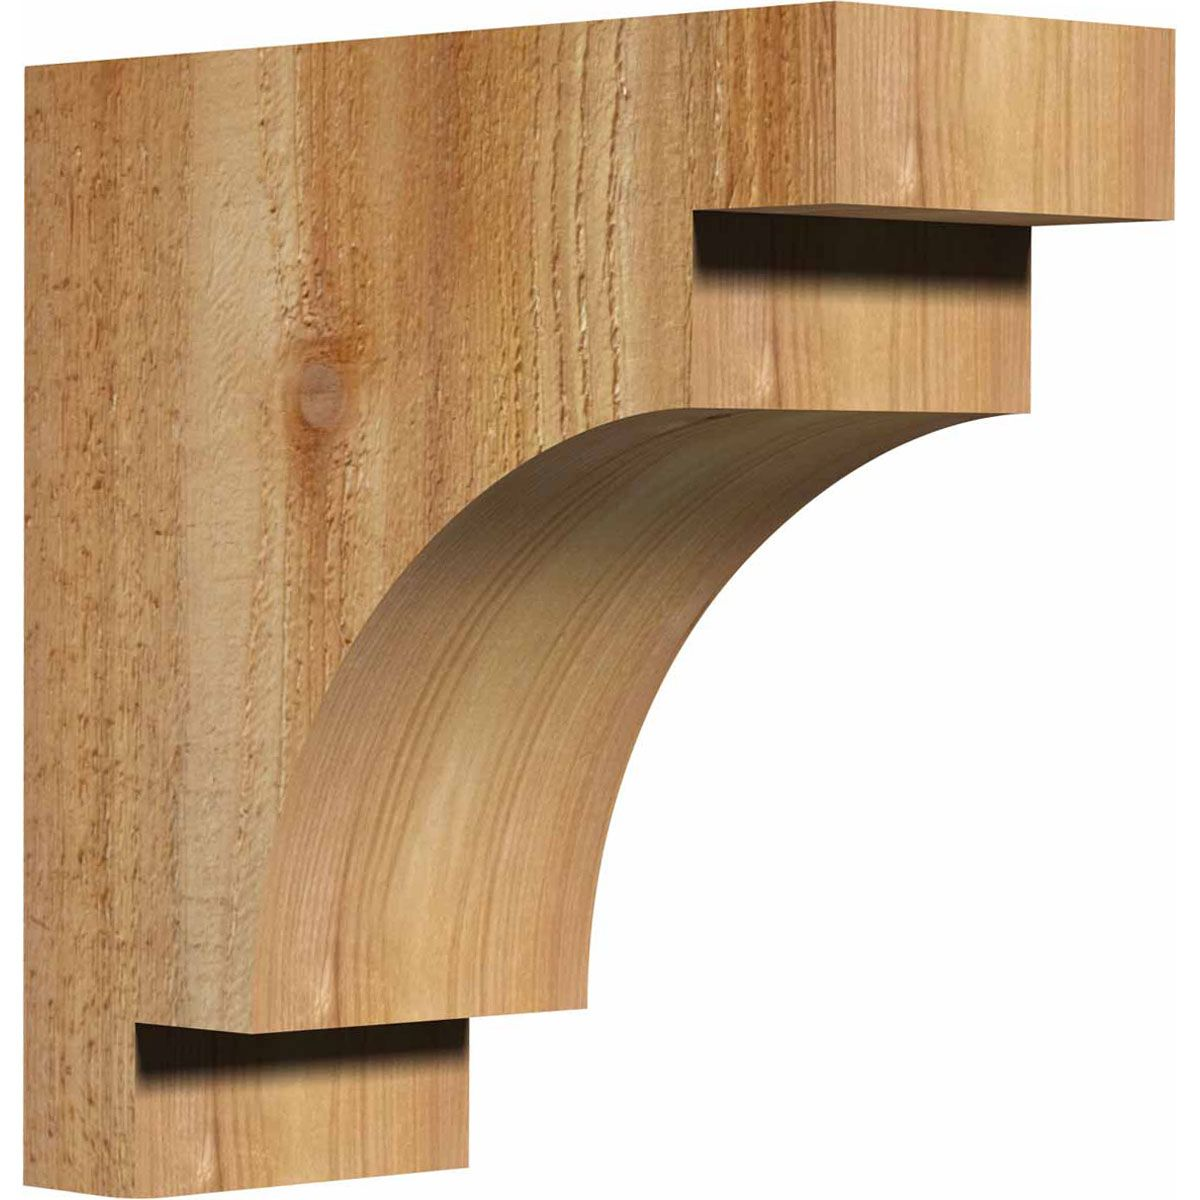 Mediterranean Rustic Timber Wood Corbel | Timber wood, Woods and ...